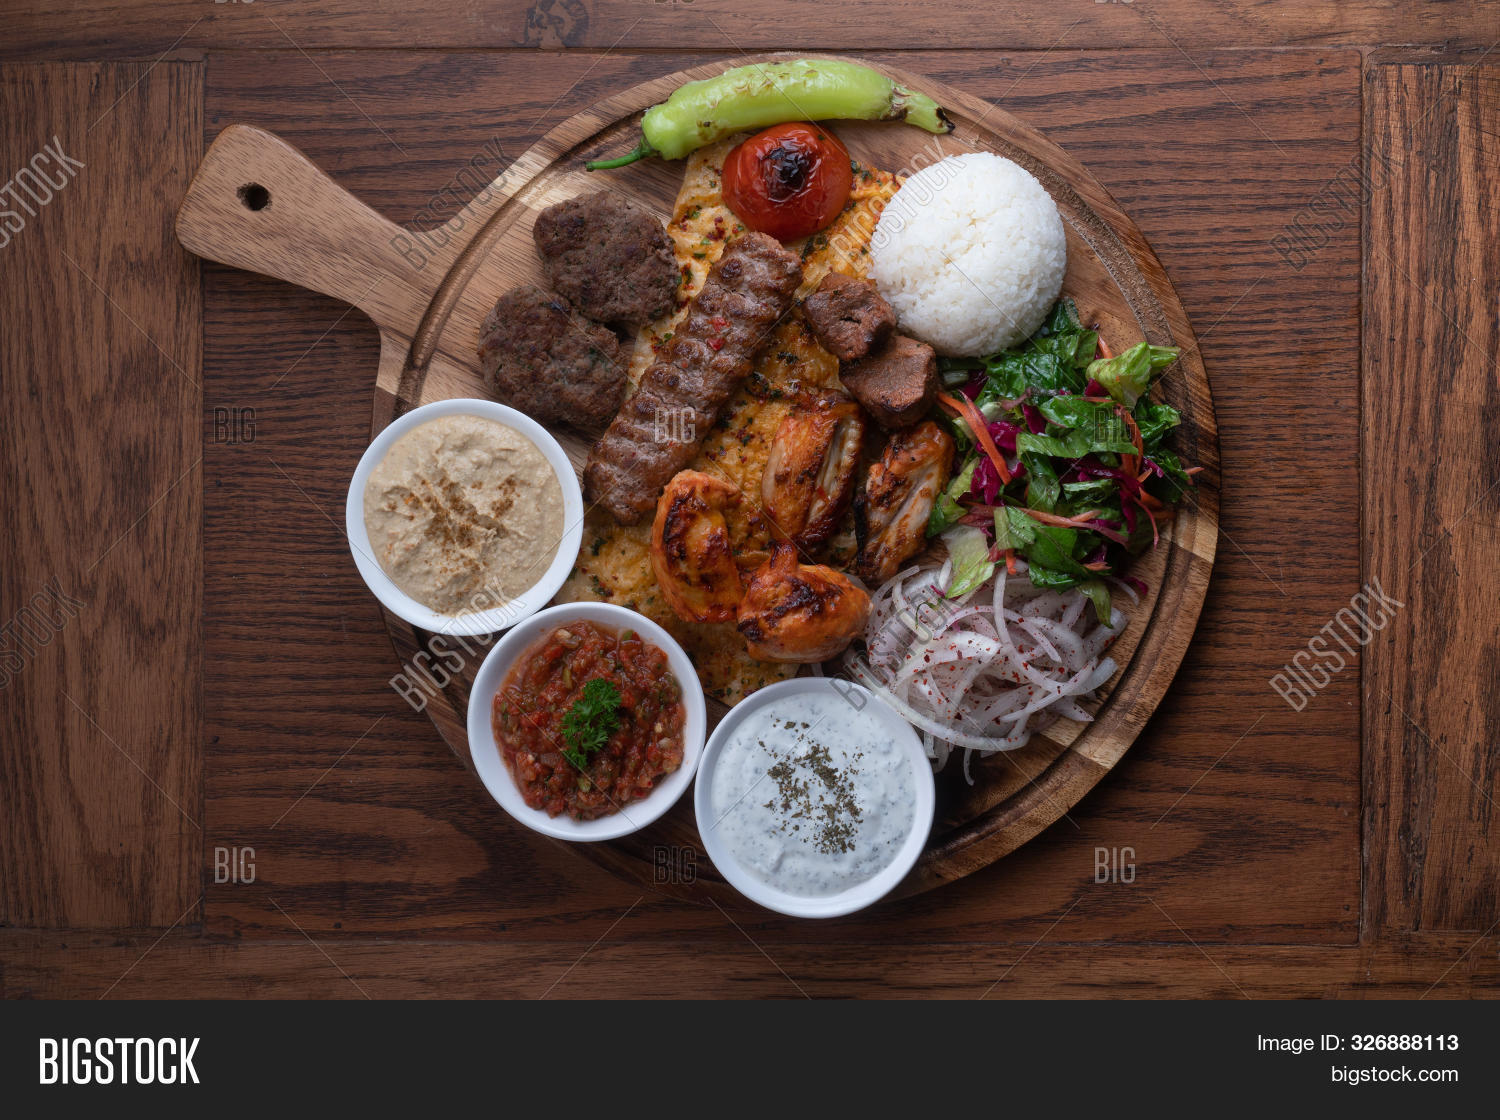 Mixed Turkish Kebab Image Photo Free Trial Bigstock